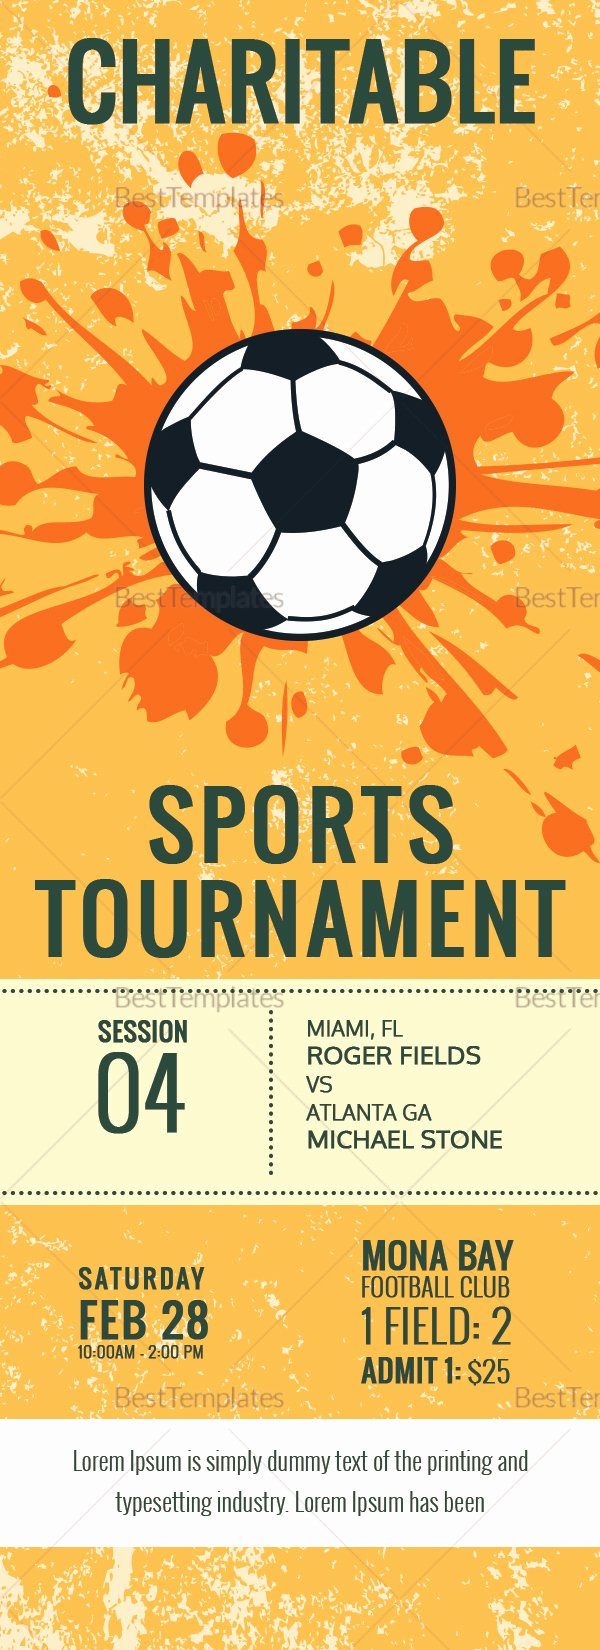 Football Ticket Template Beautiful Football tournament Ticket Design Template In Word Psd